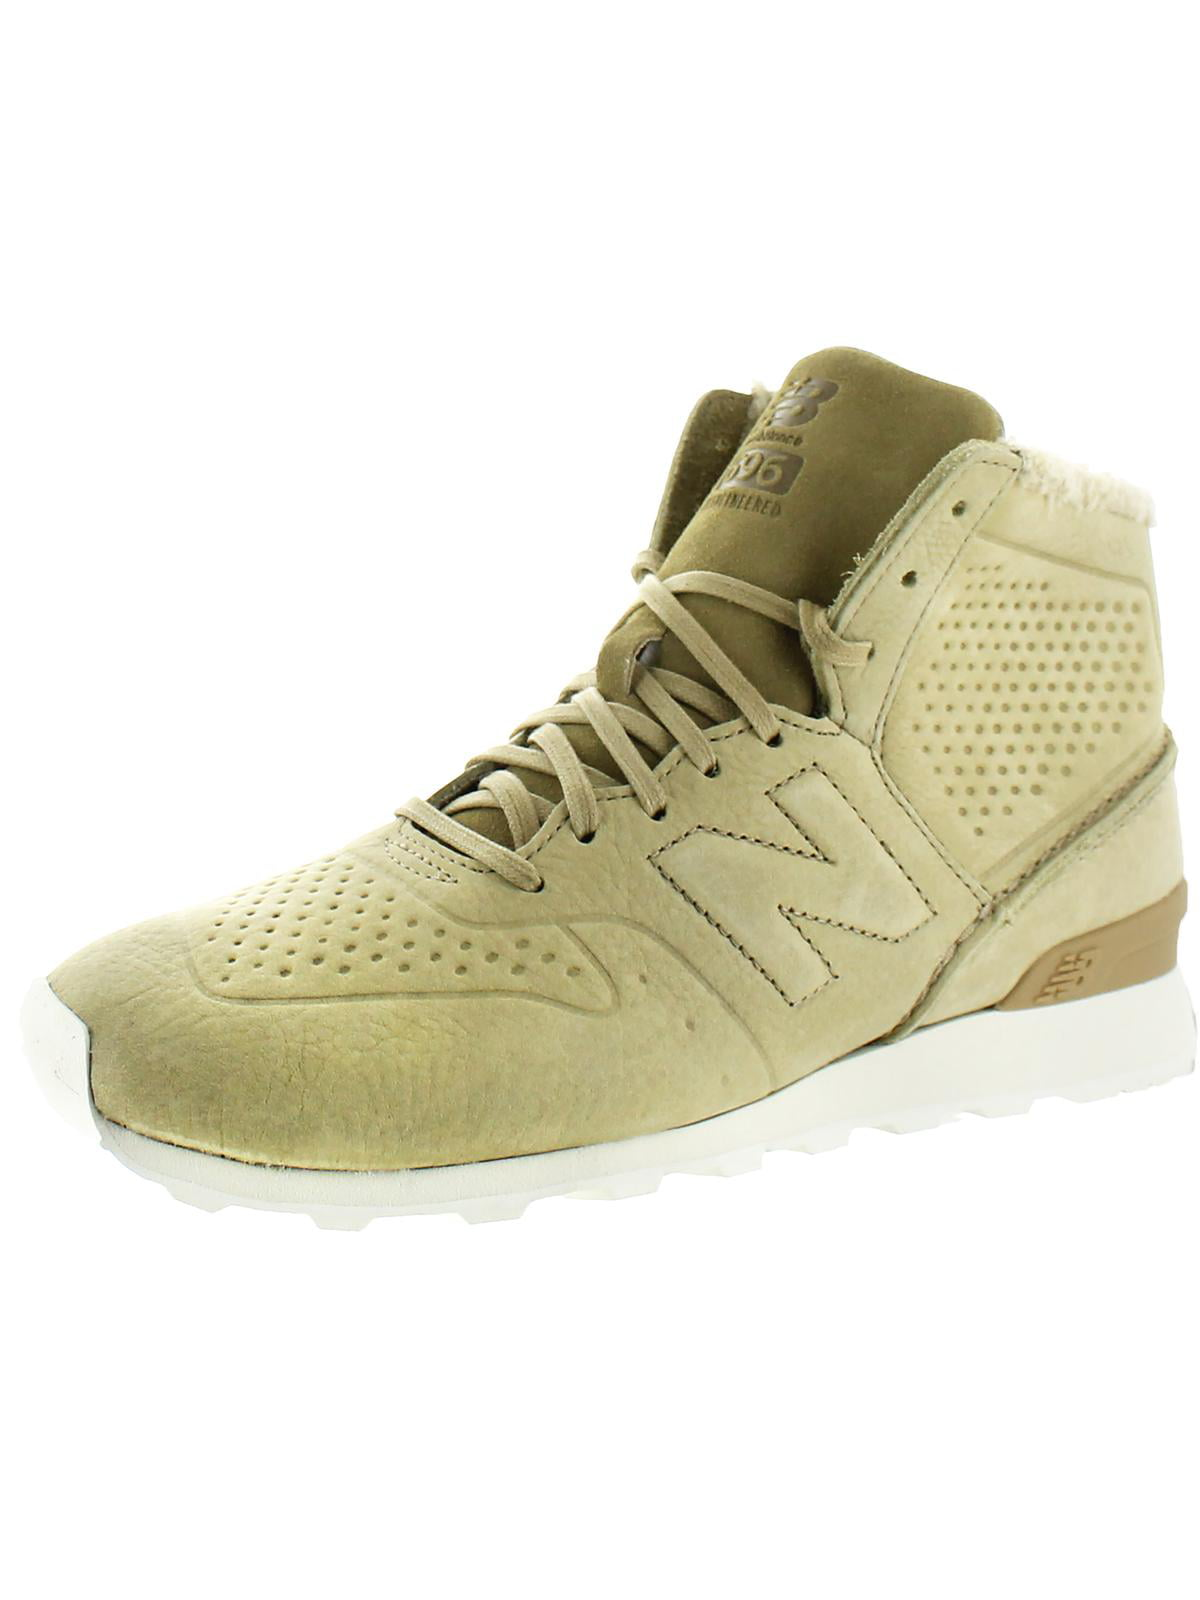 New Balance Womens 698 ReEngineered Faux Fur Lining Perforated High Top Sneakers by New Balance